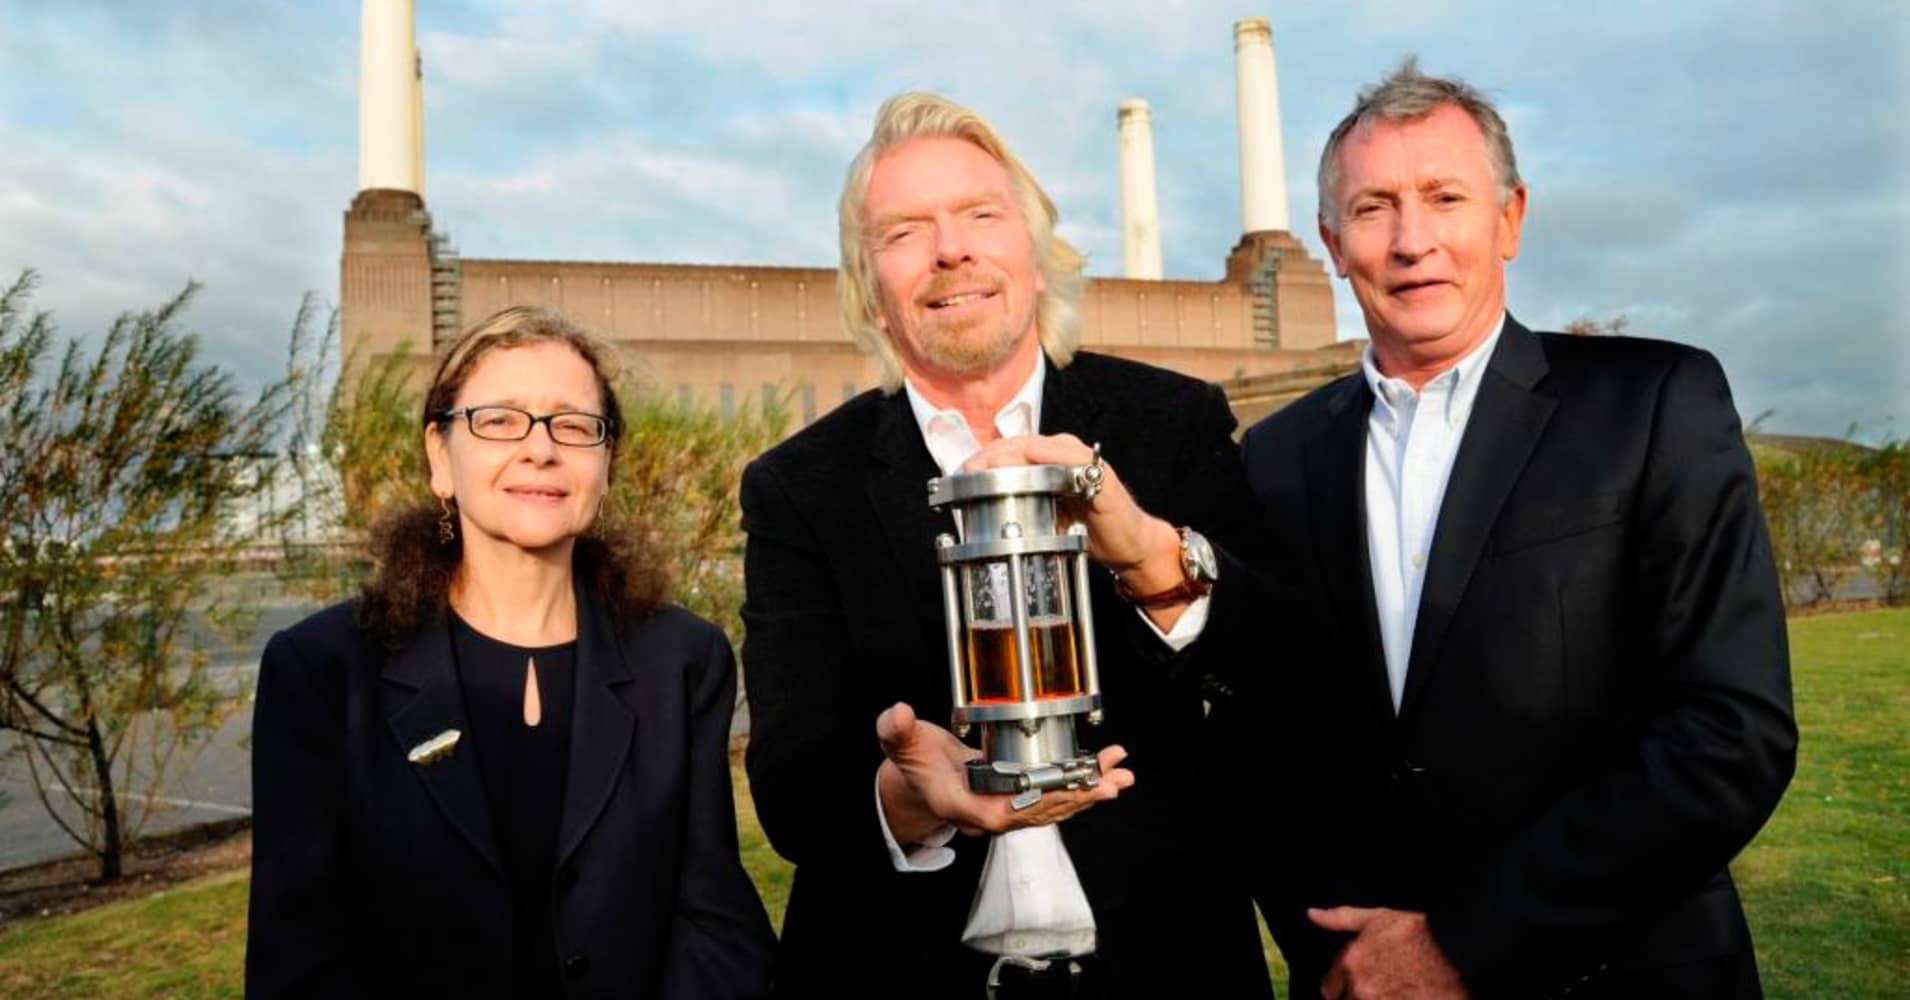 LanzaTech CEO Jennifer Holmgren with Richard Branson and the then CEO of Virgin Atlantic, Steve Ridgway, in front of Battersea Power Station in London in 2011 when LanzaTech and Virgin Atlantic announced their partnership.